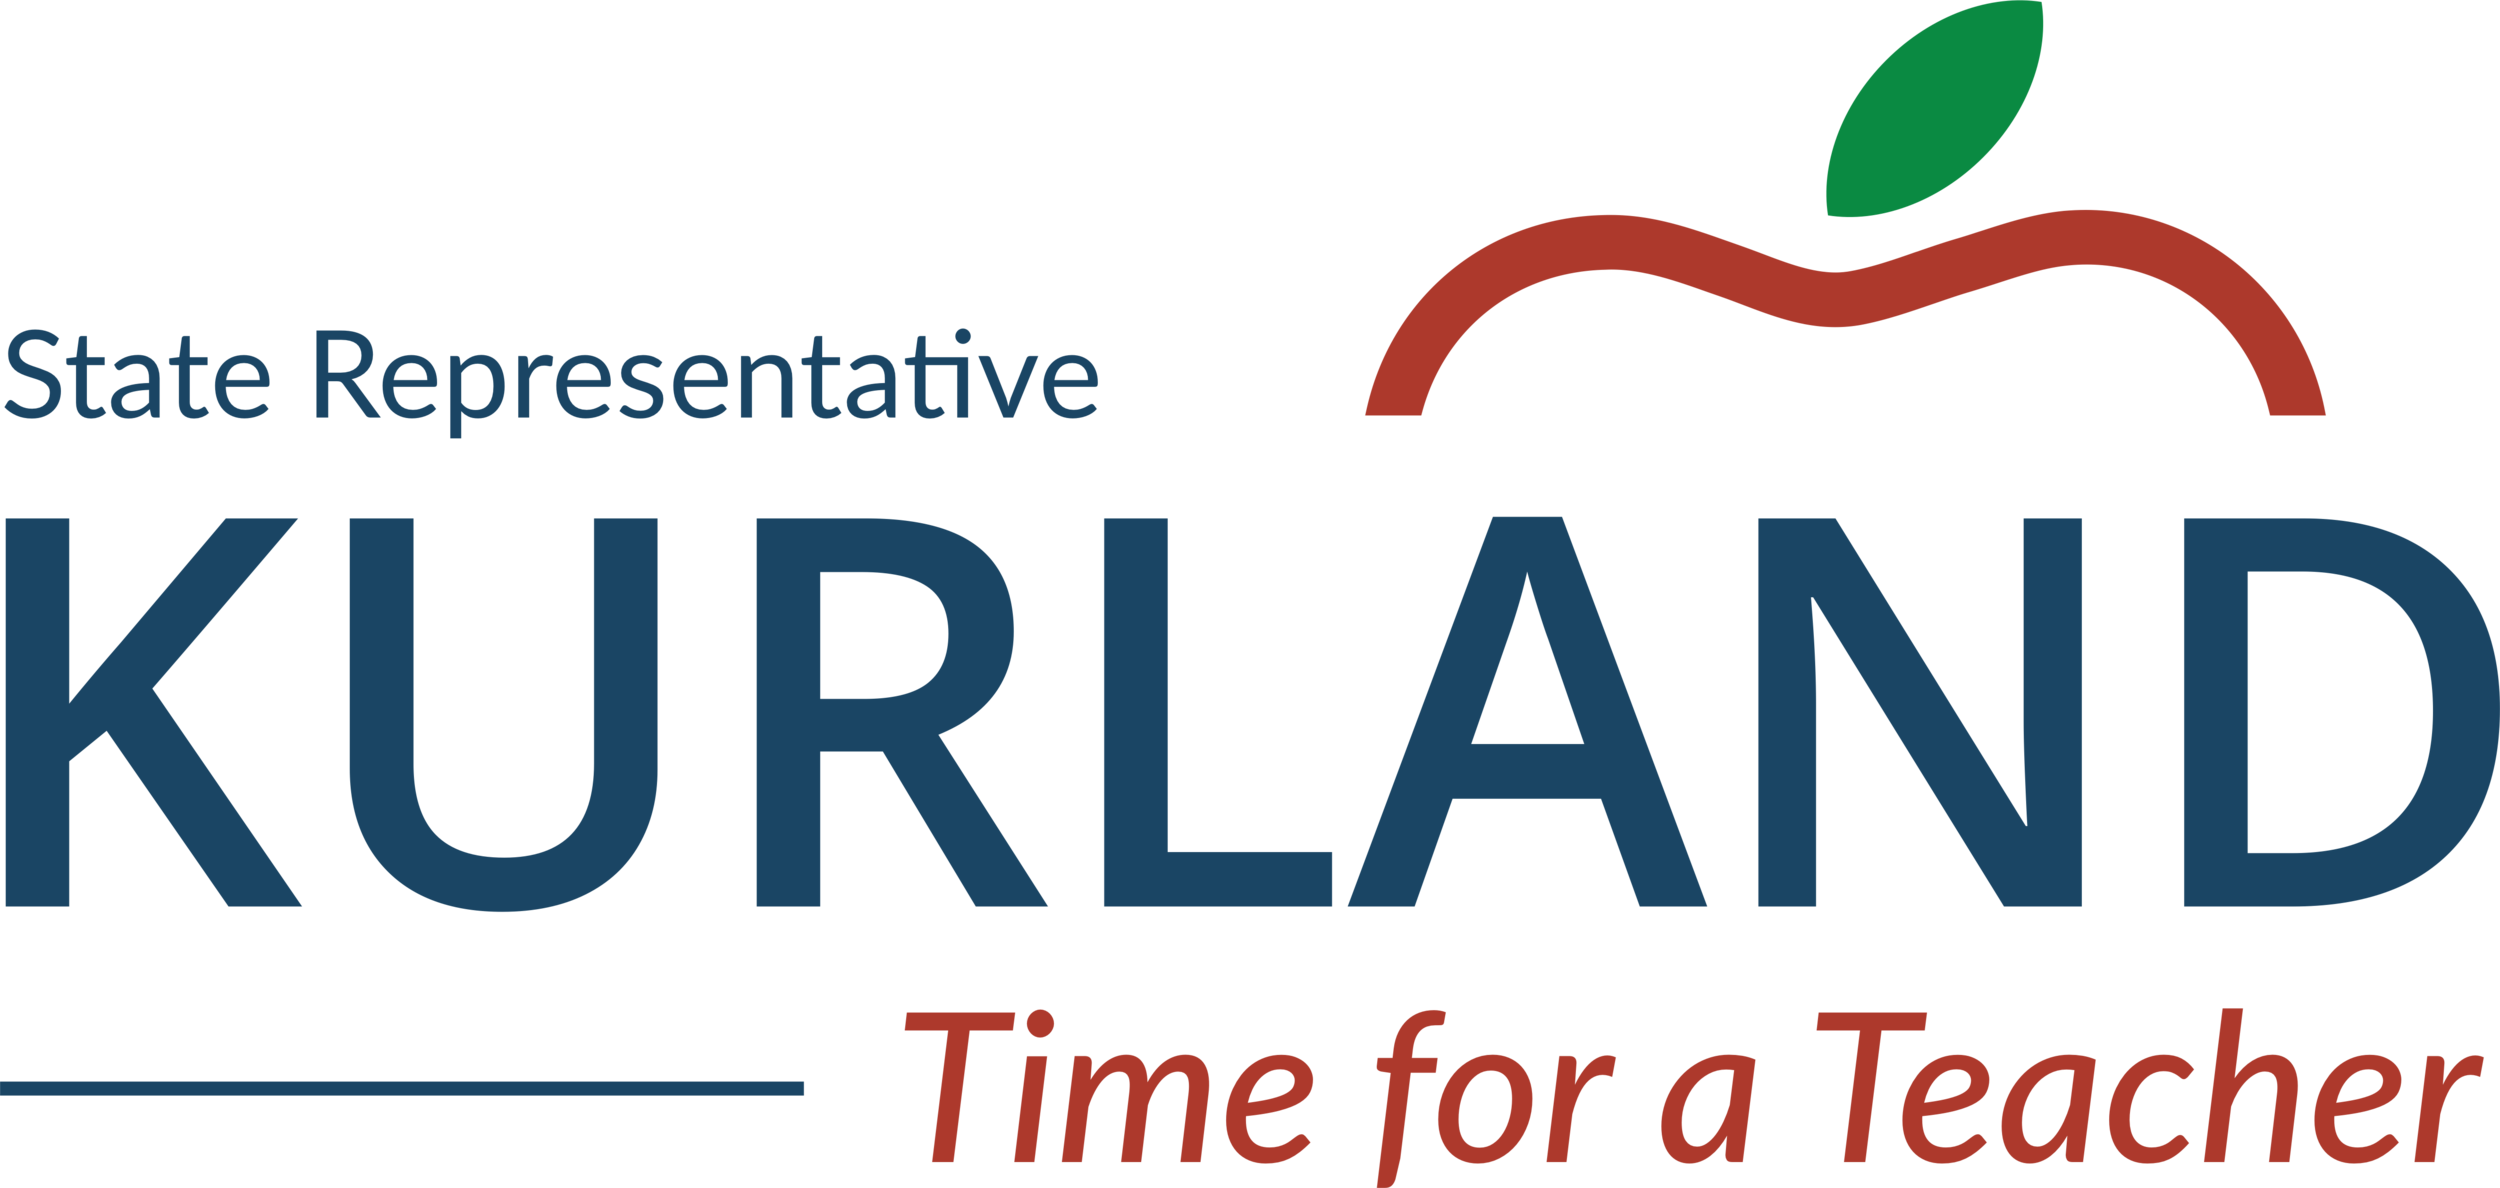 Eric Kurland for AZ House 23 - Time for a Teacher!